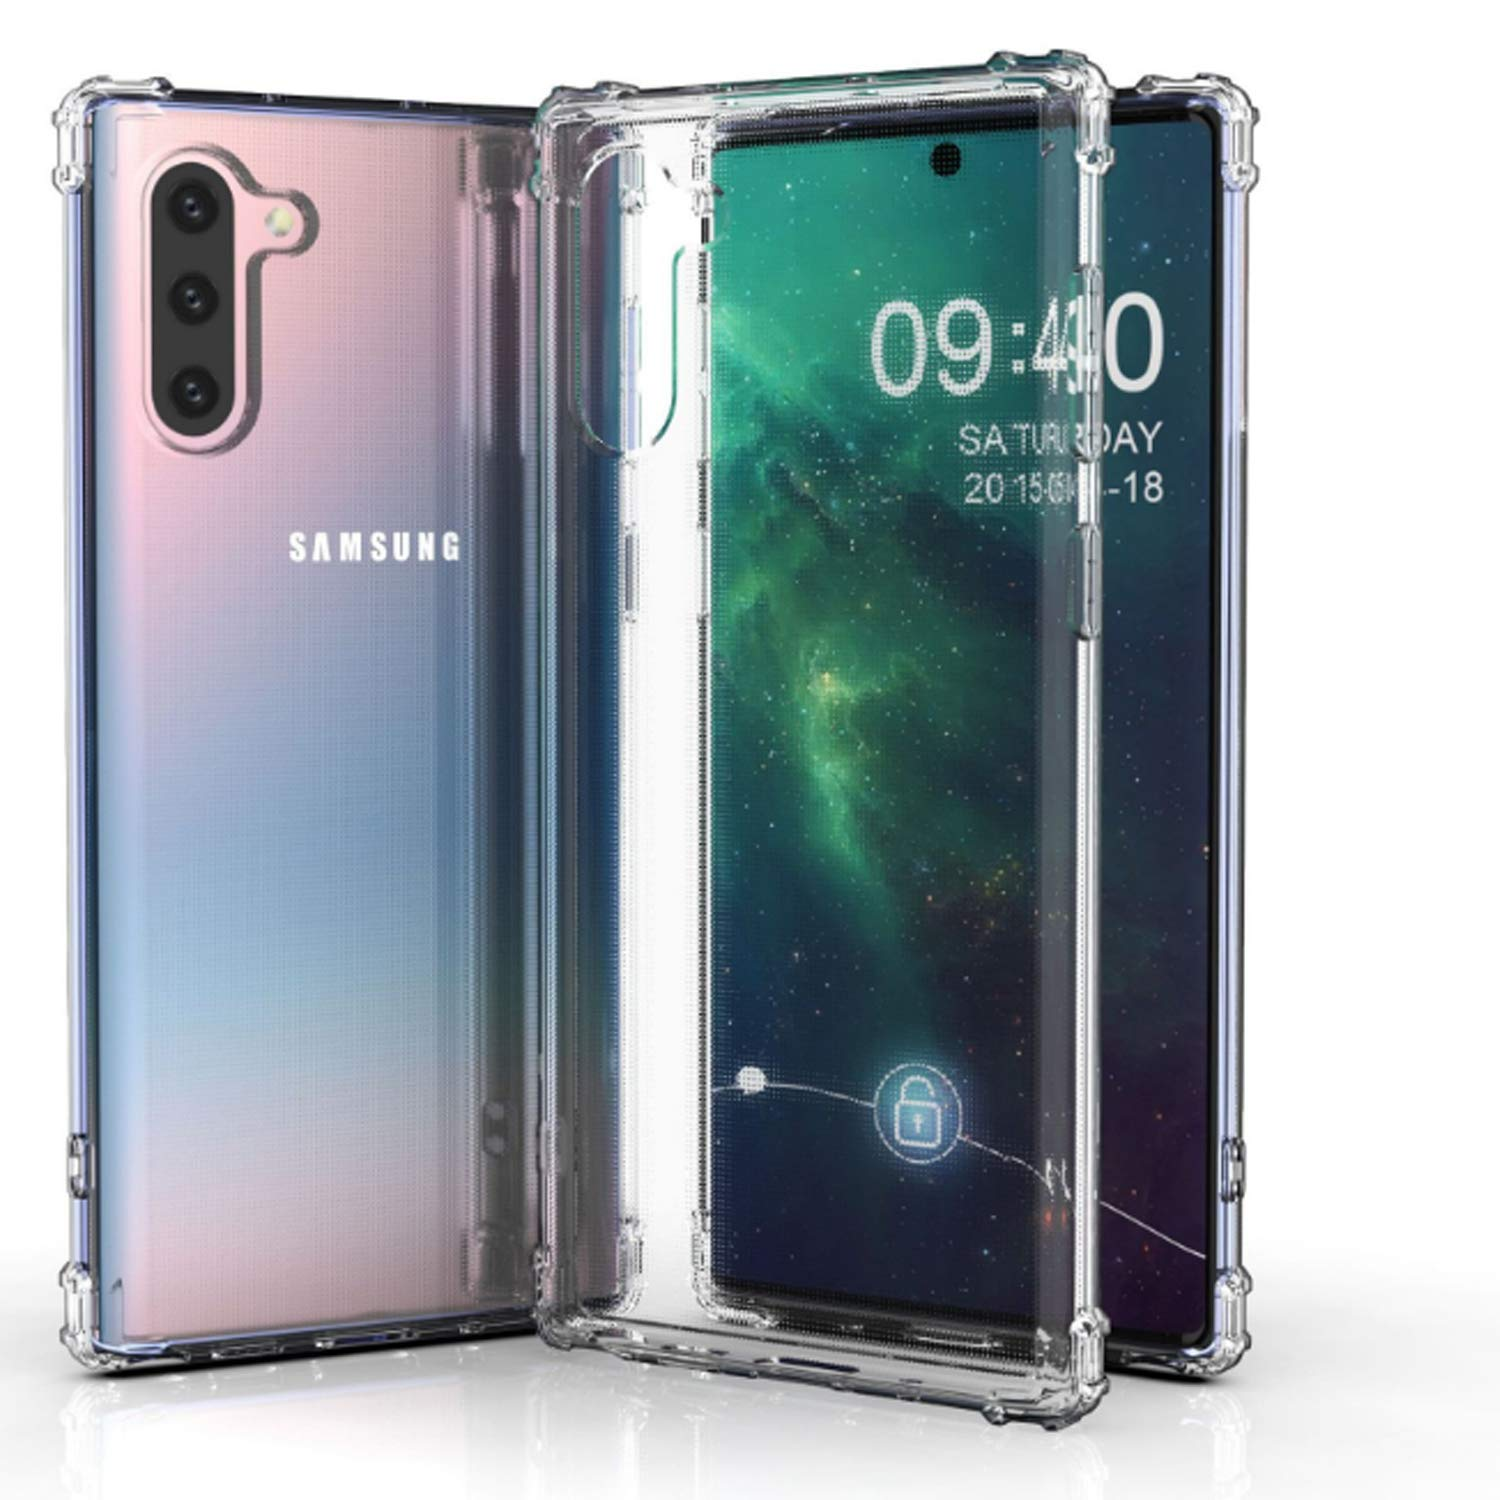 Shockproof Bumper Galaxy Note 10 Case - Transparent Clear - MyPhoneCase.com